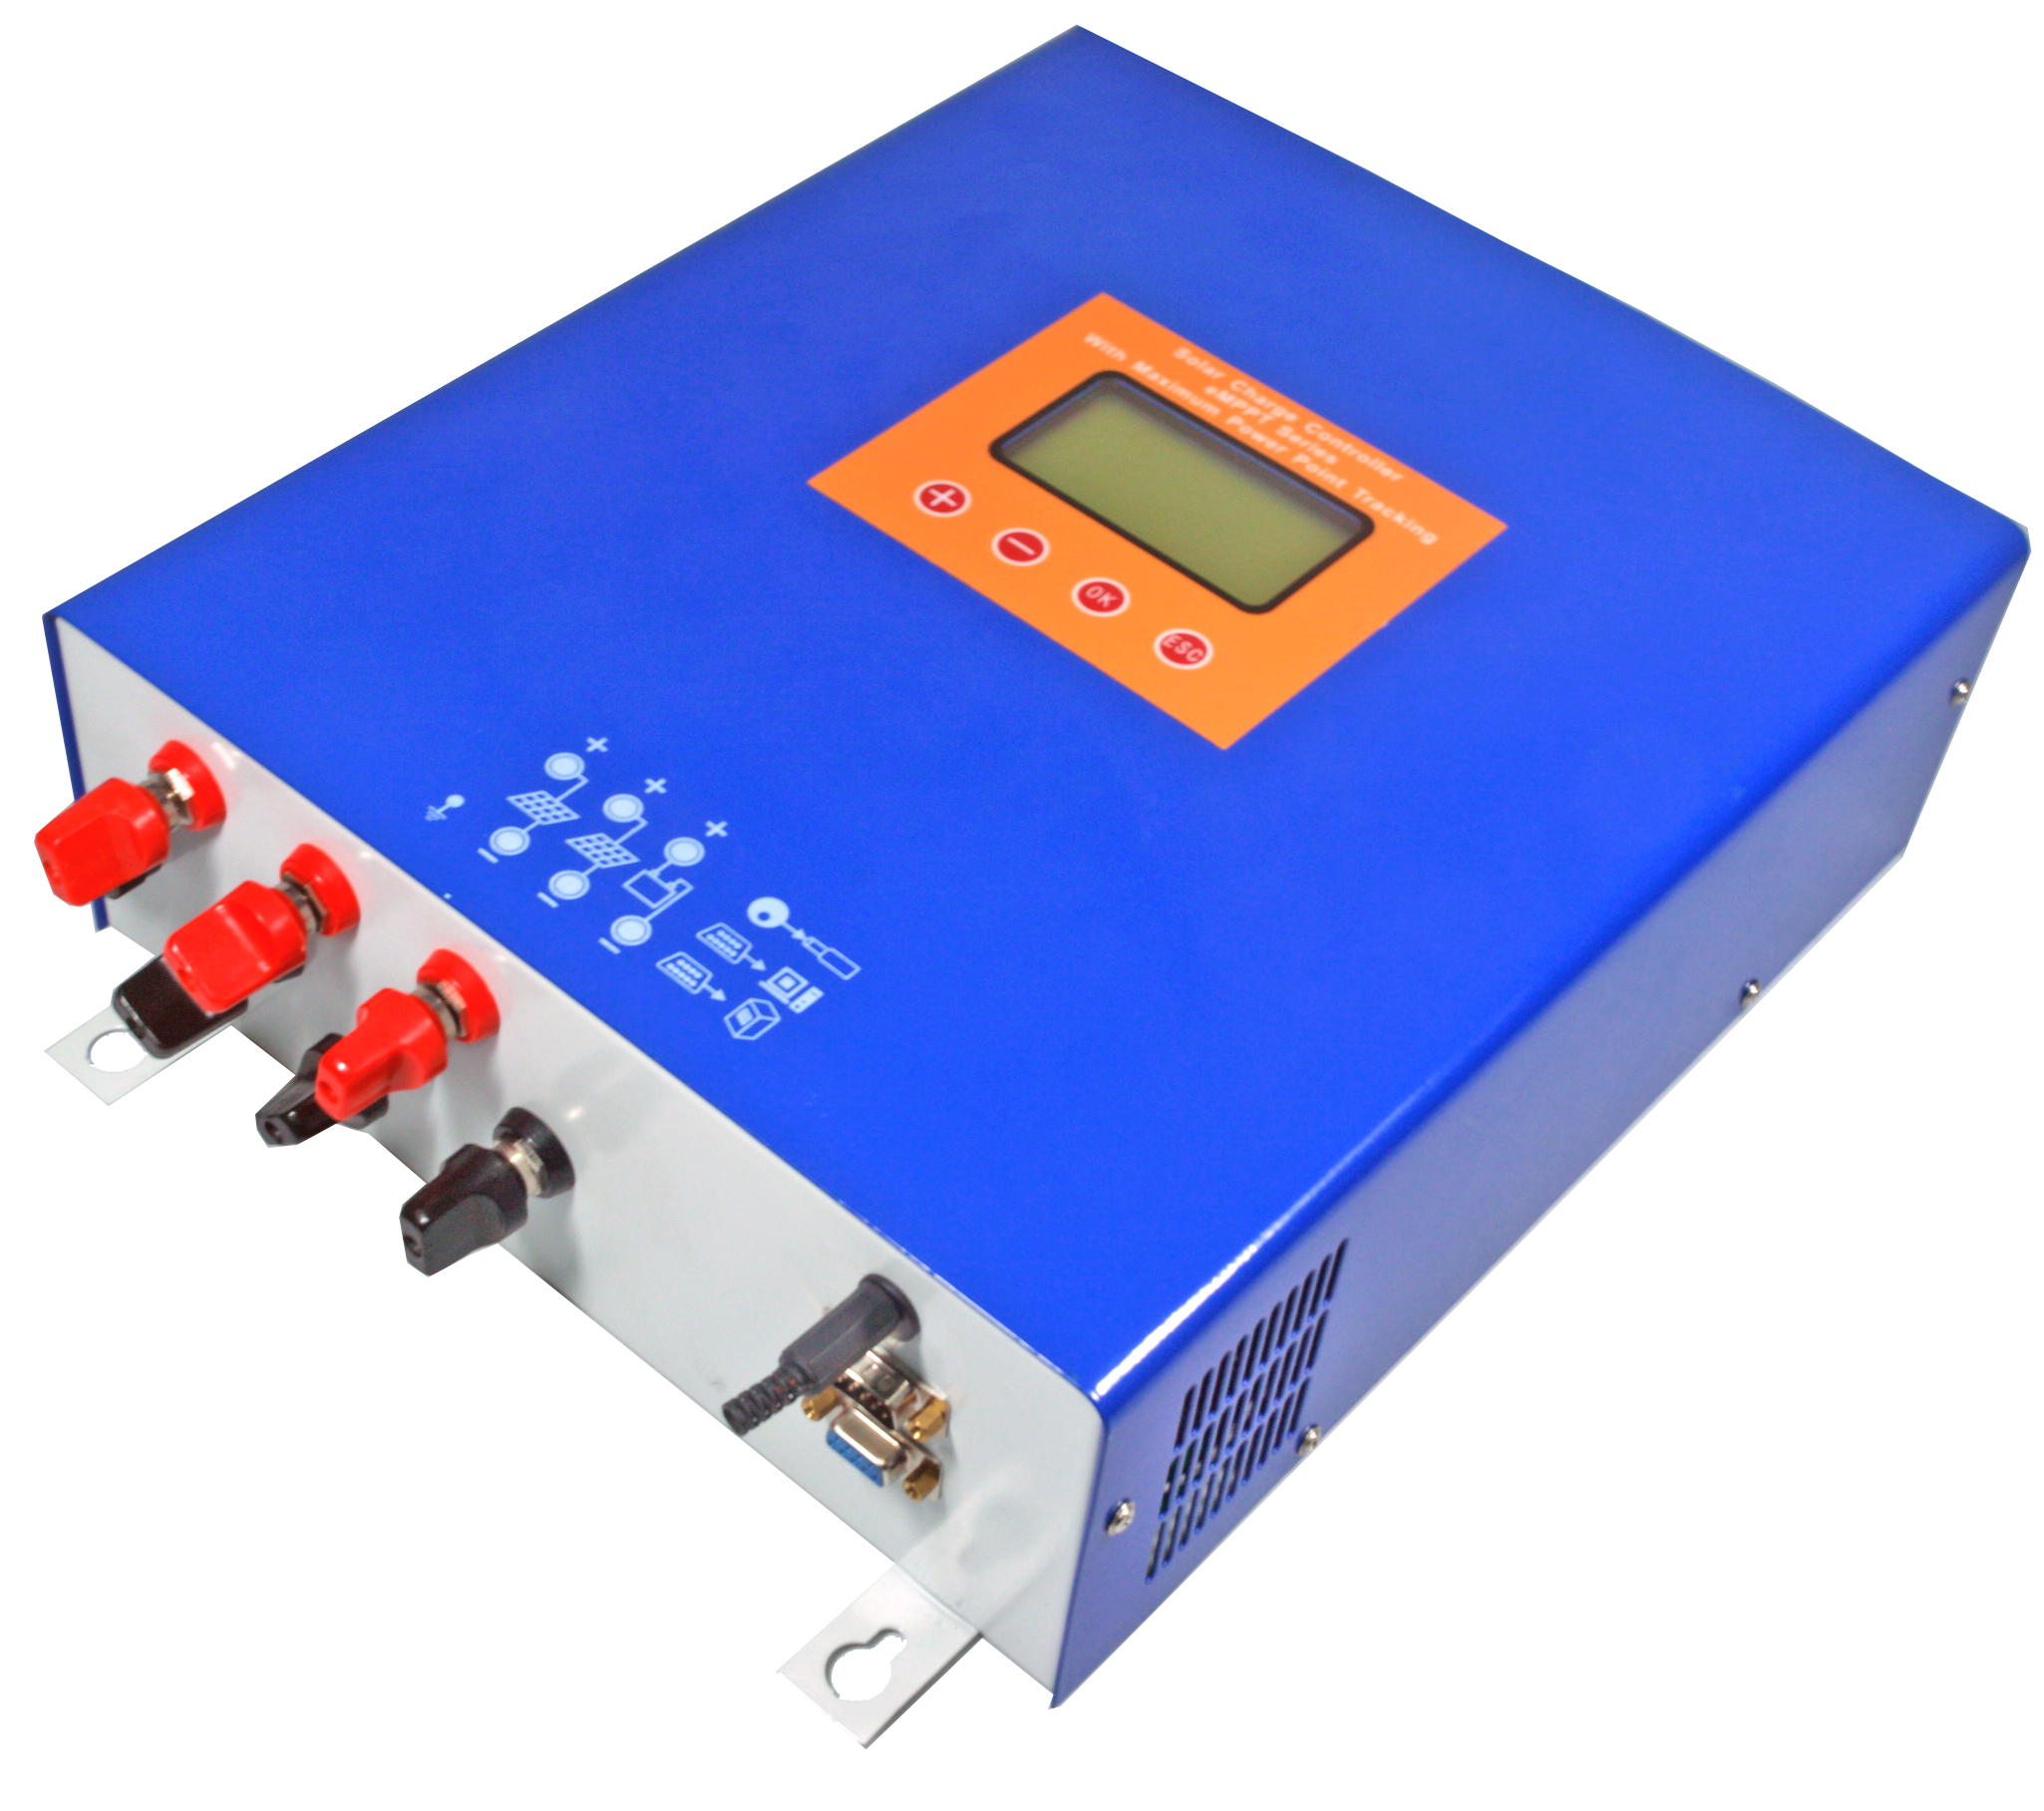 Photosynthetic mppt solar controller/power tracking controller 48v60a lcd display